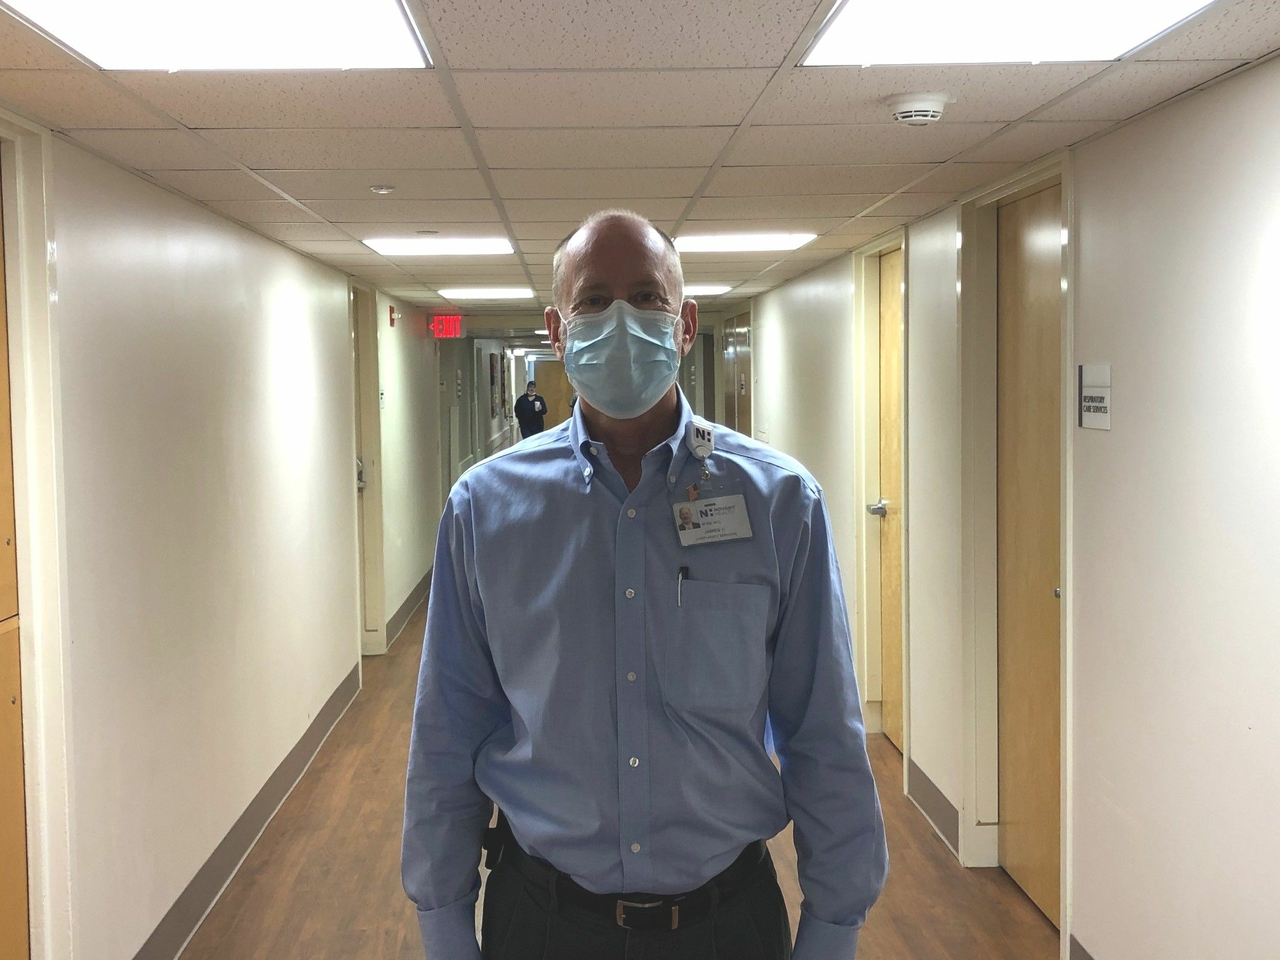 Walking the hospital halls with a chaplain during COVID-19